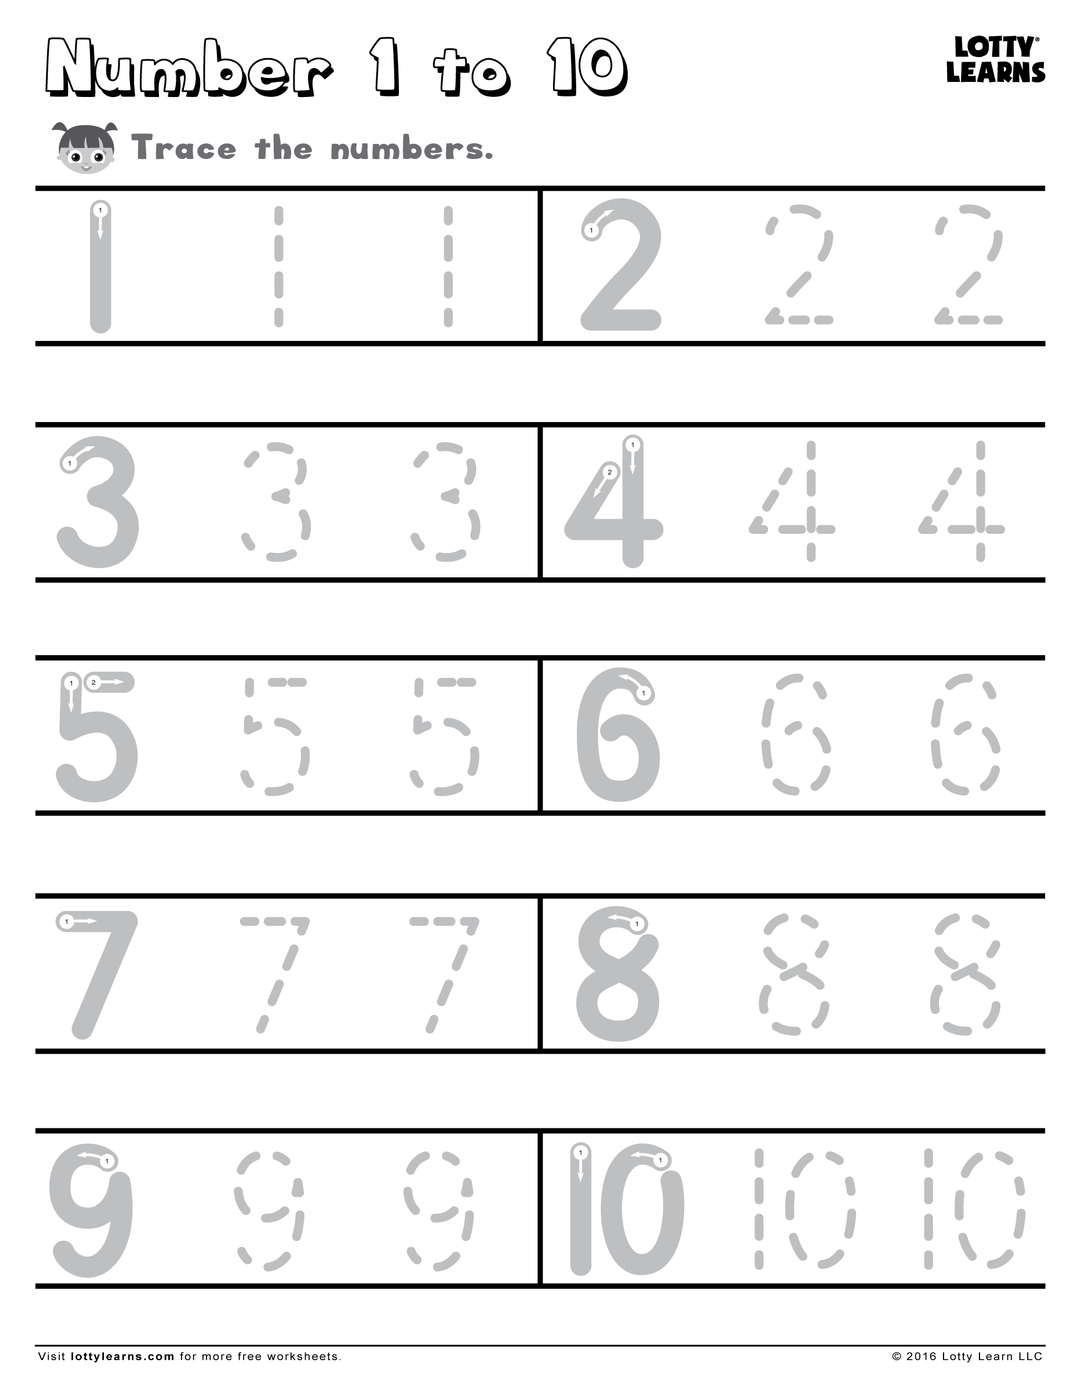 Number 1 to 10 Lotty Learns teachnumbers1to10 Numbers